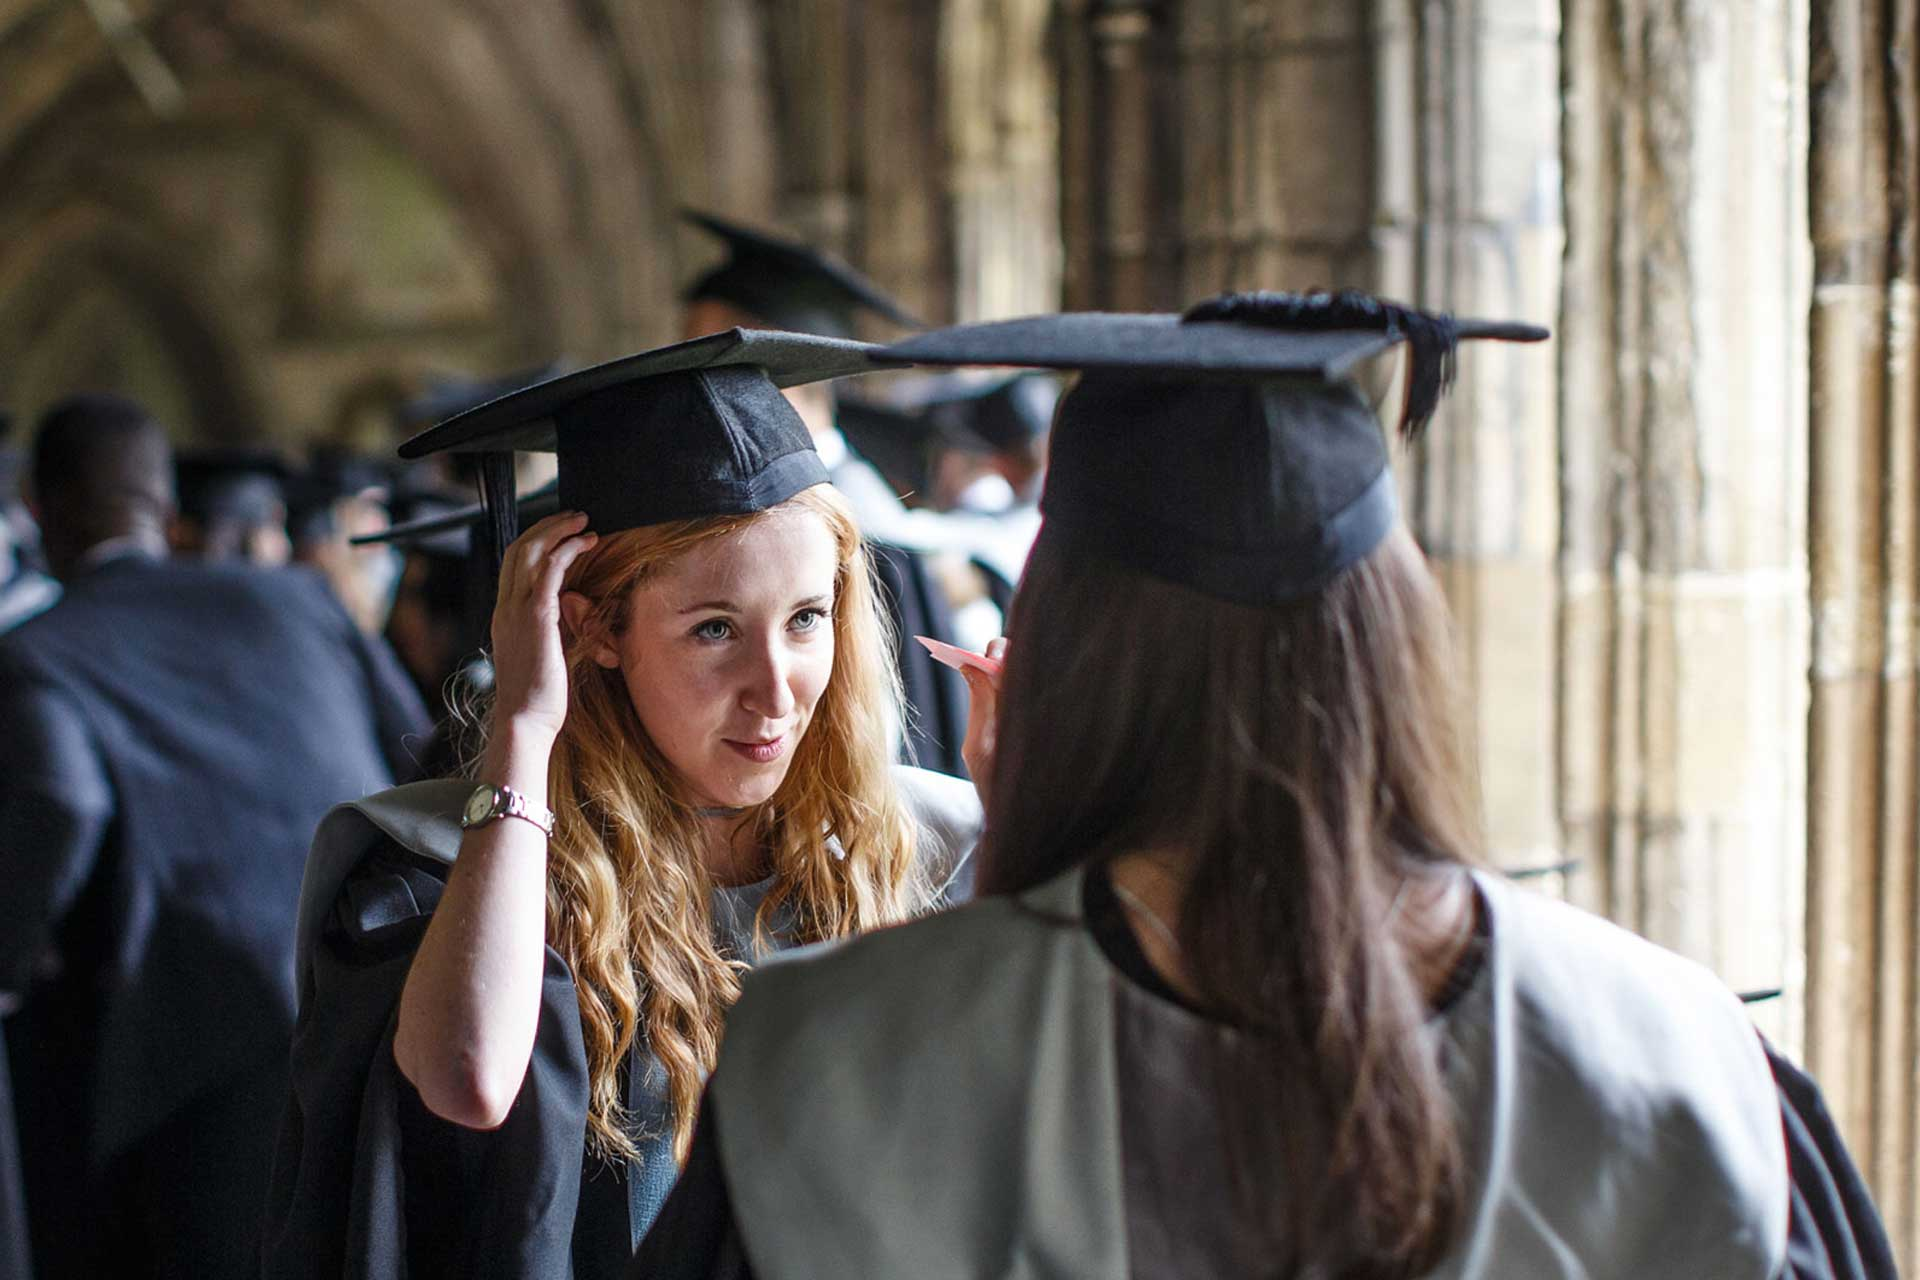 Bright working class applicants are    systematically locked out    of top jobs  because employers focus their recruitment efforts on elite universities